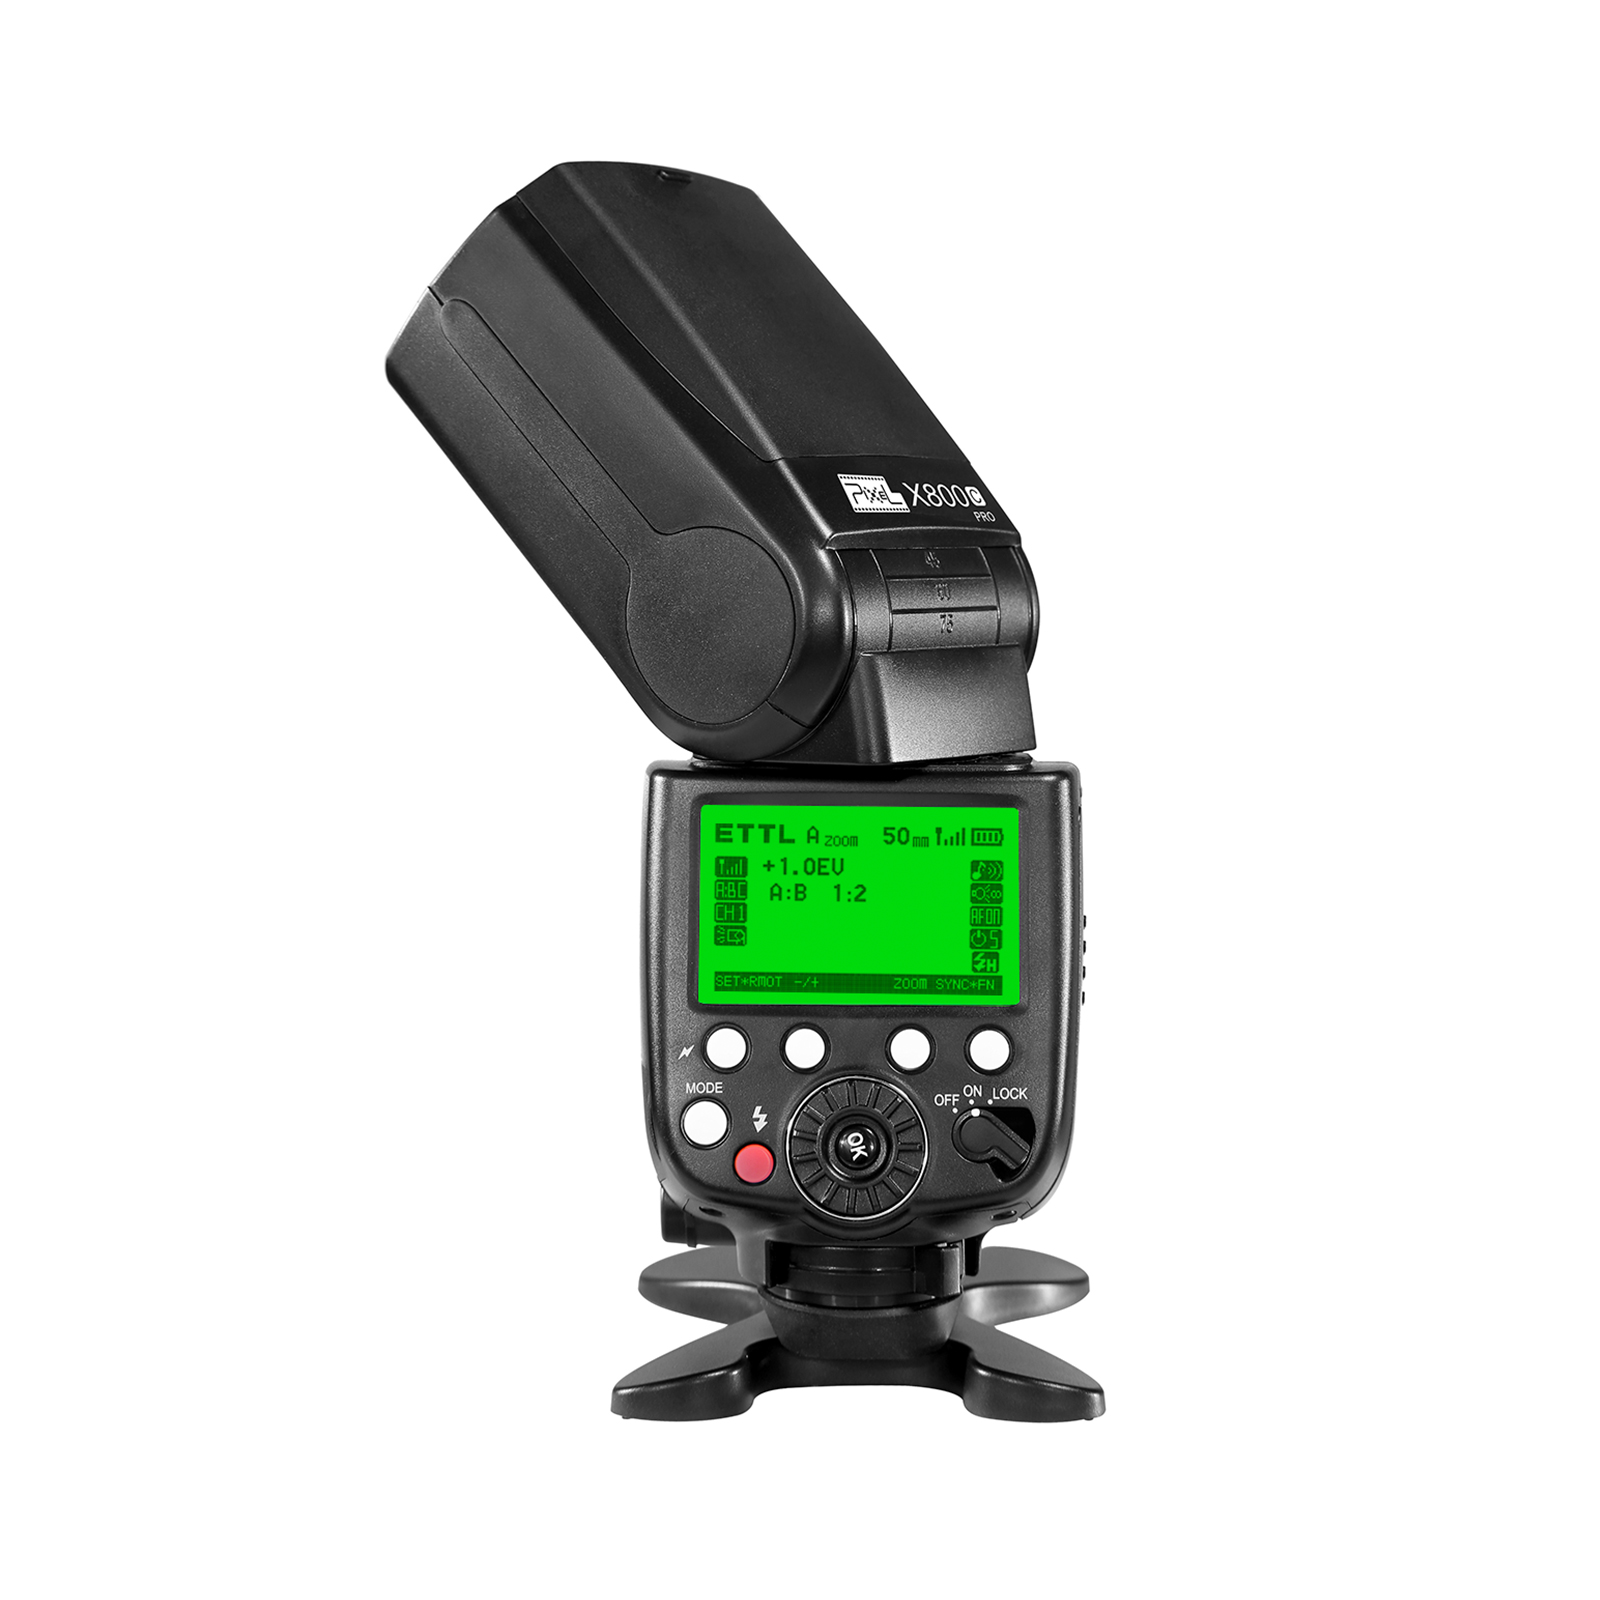 Pixel X800C PRO Speedlite, high speed synchronization and powerful performance.